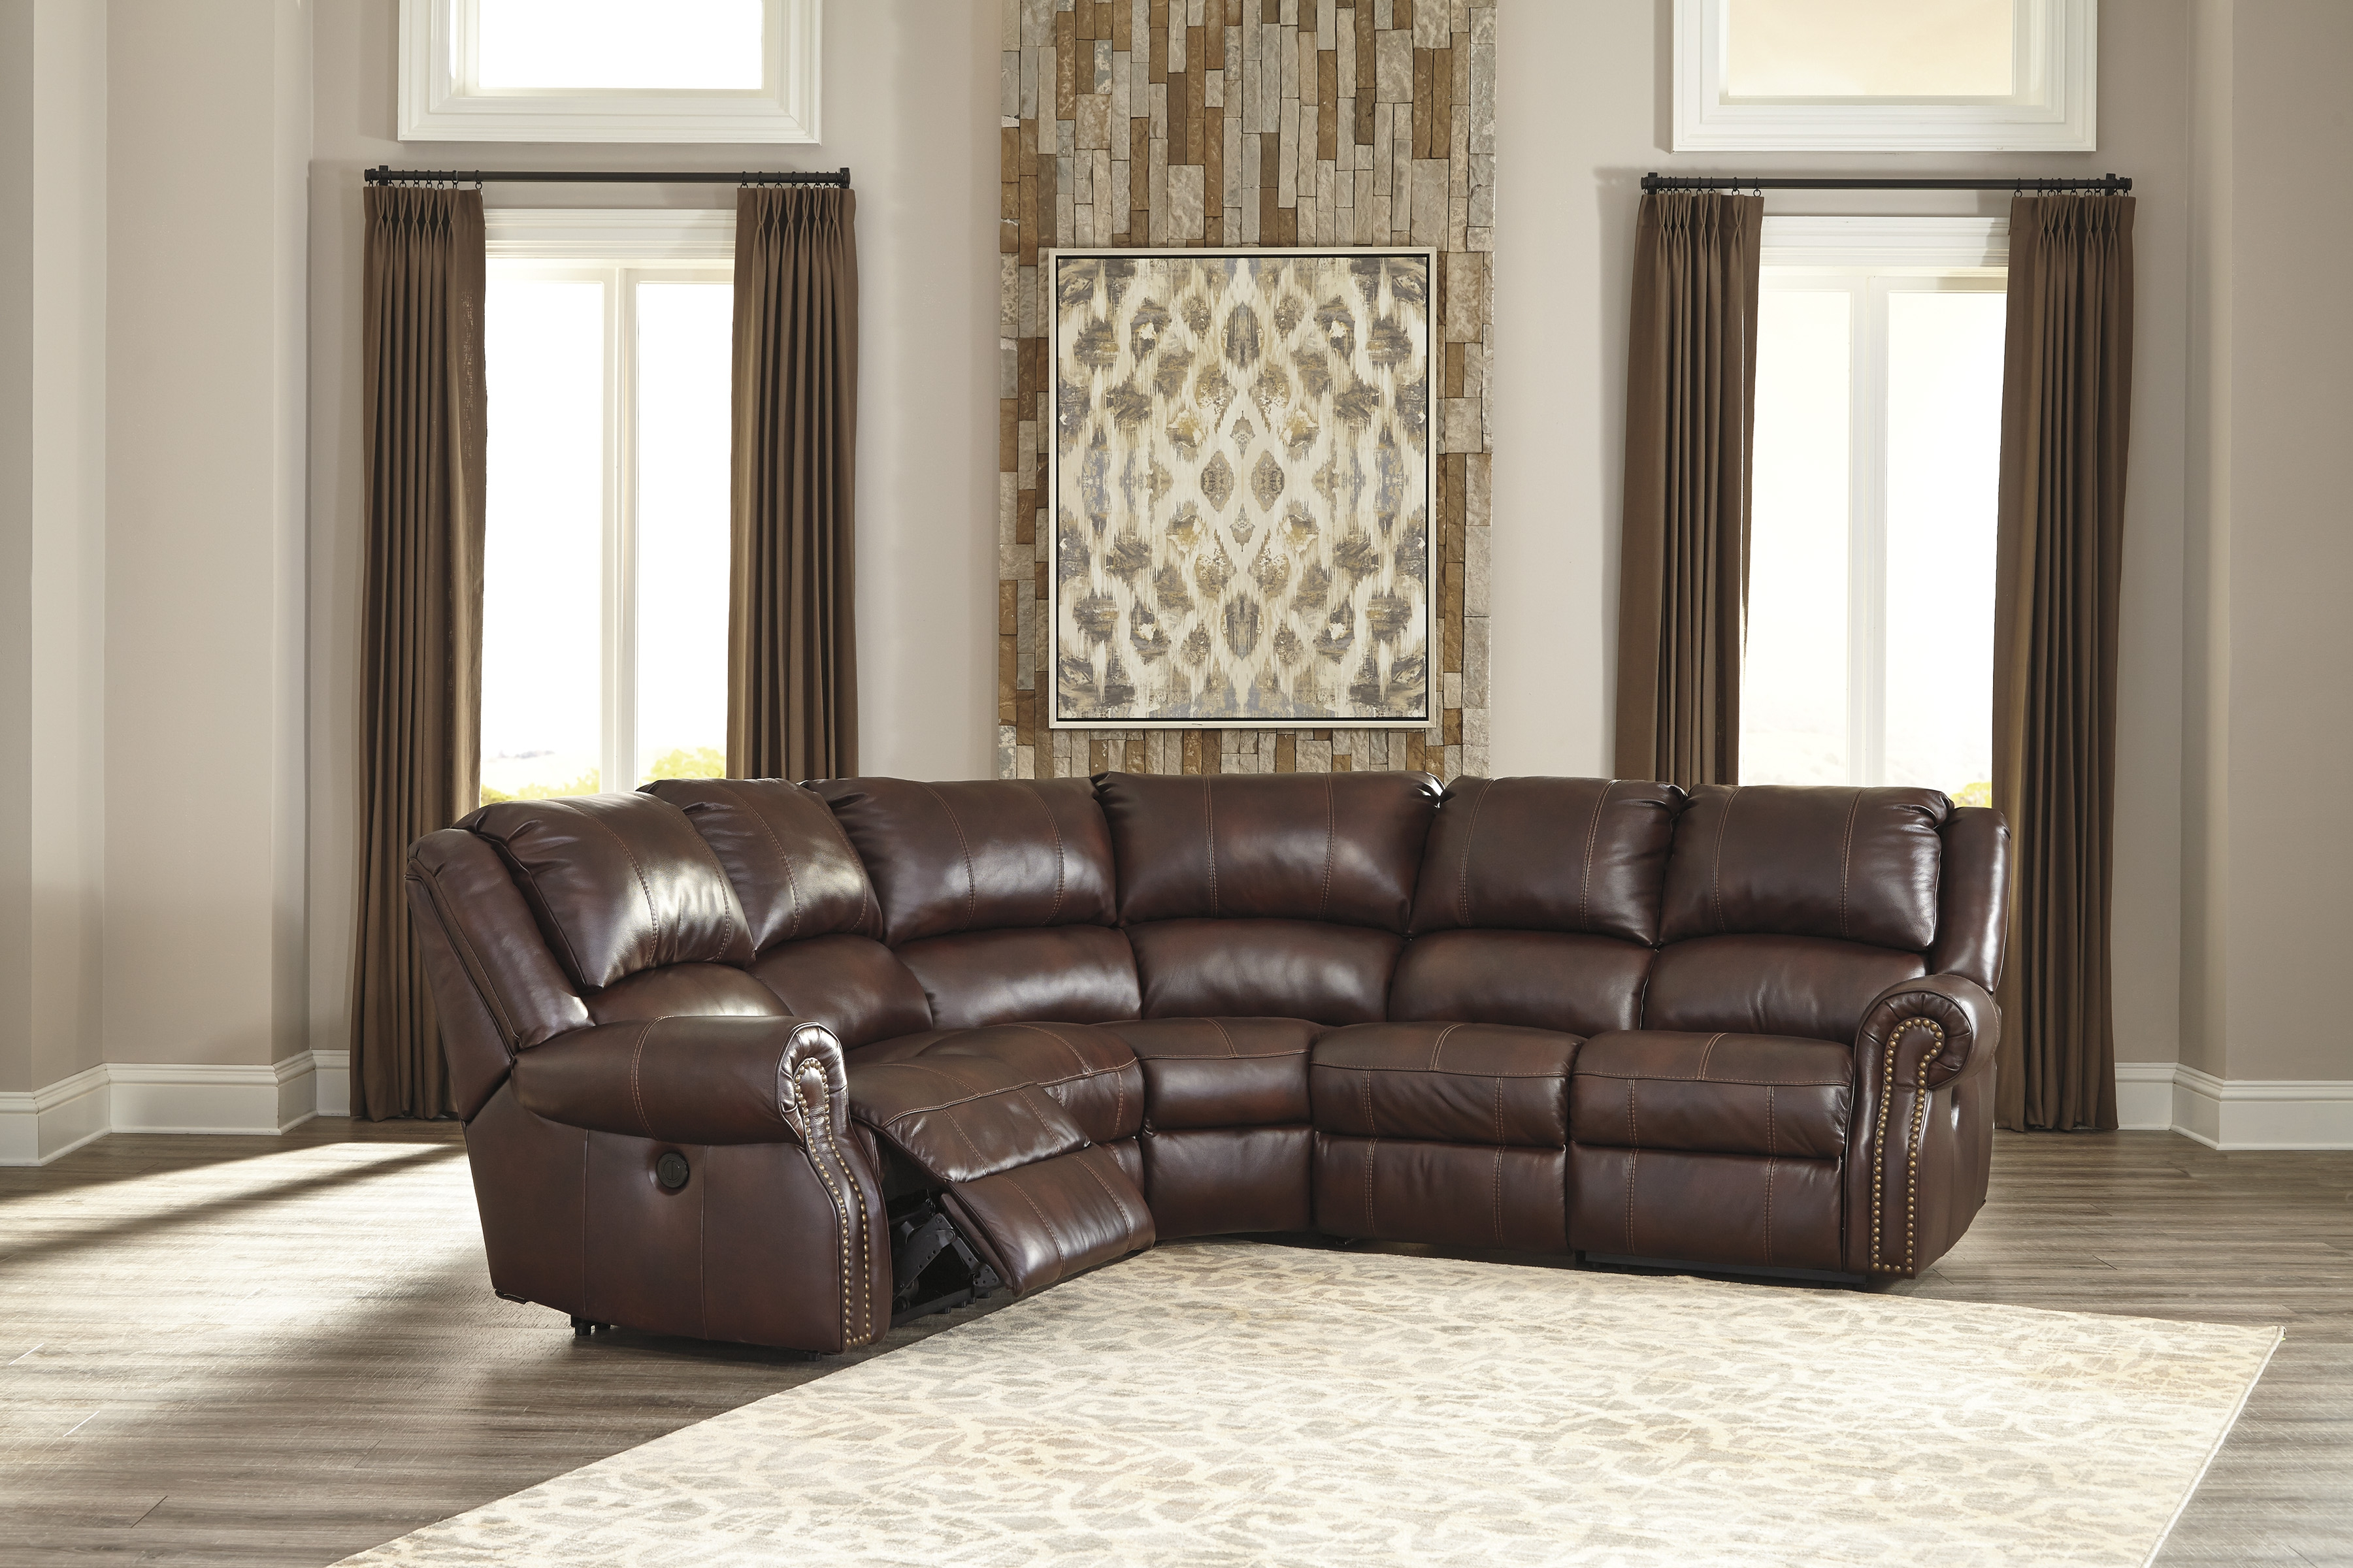 Ashley Furniture Collinsville Armless Recliner The